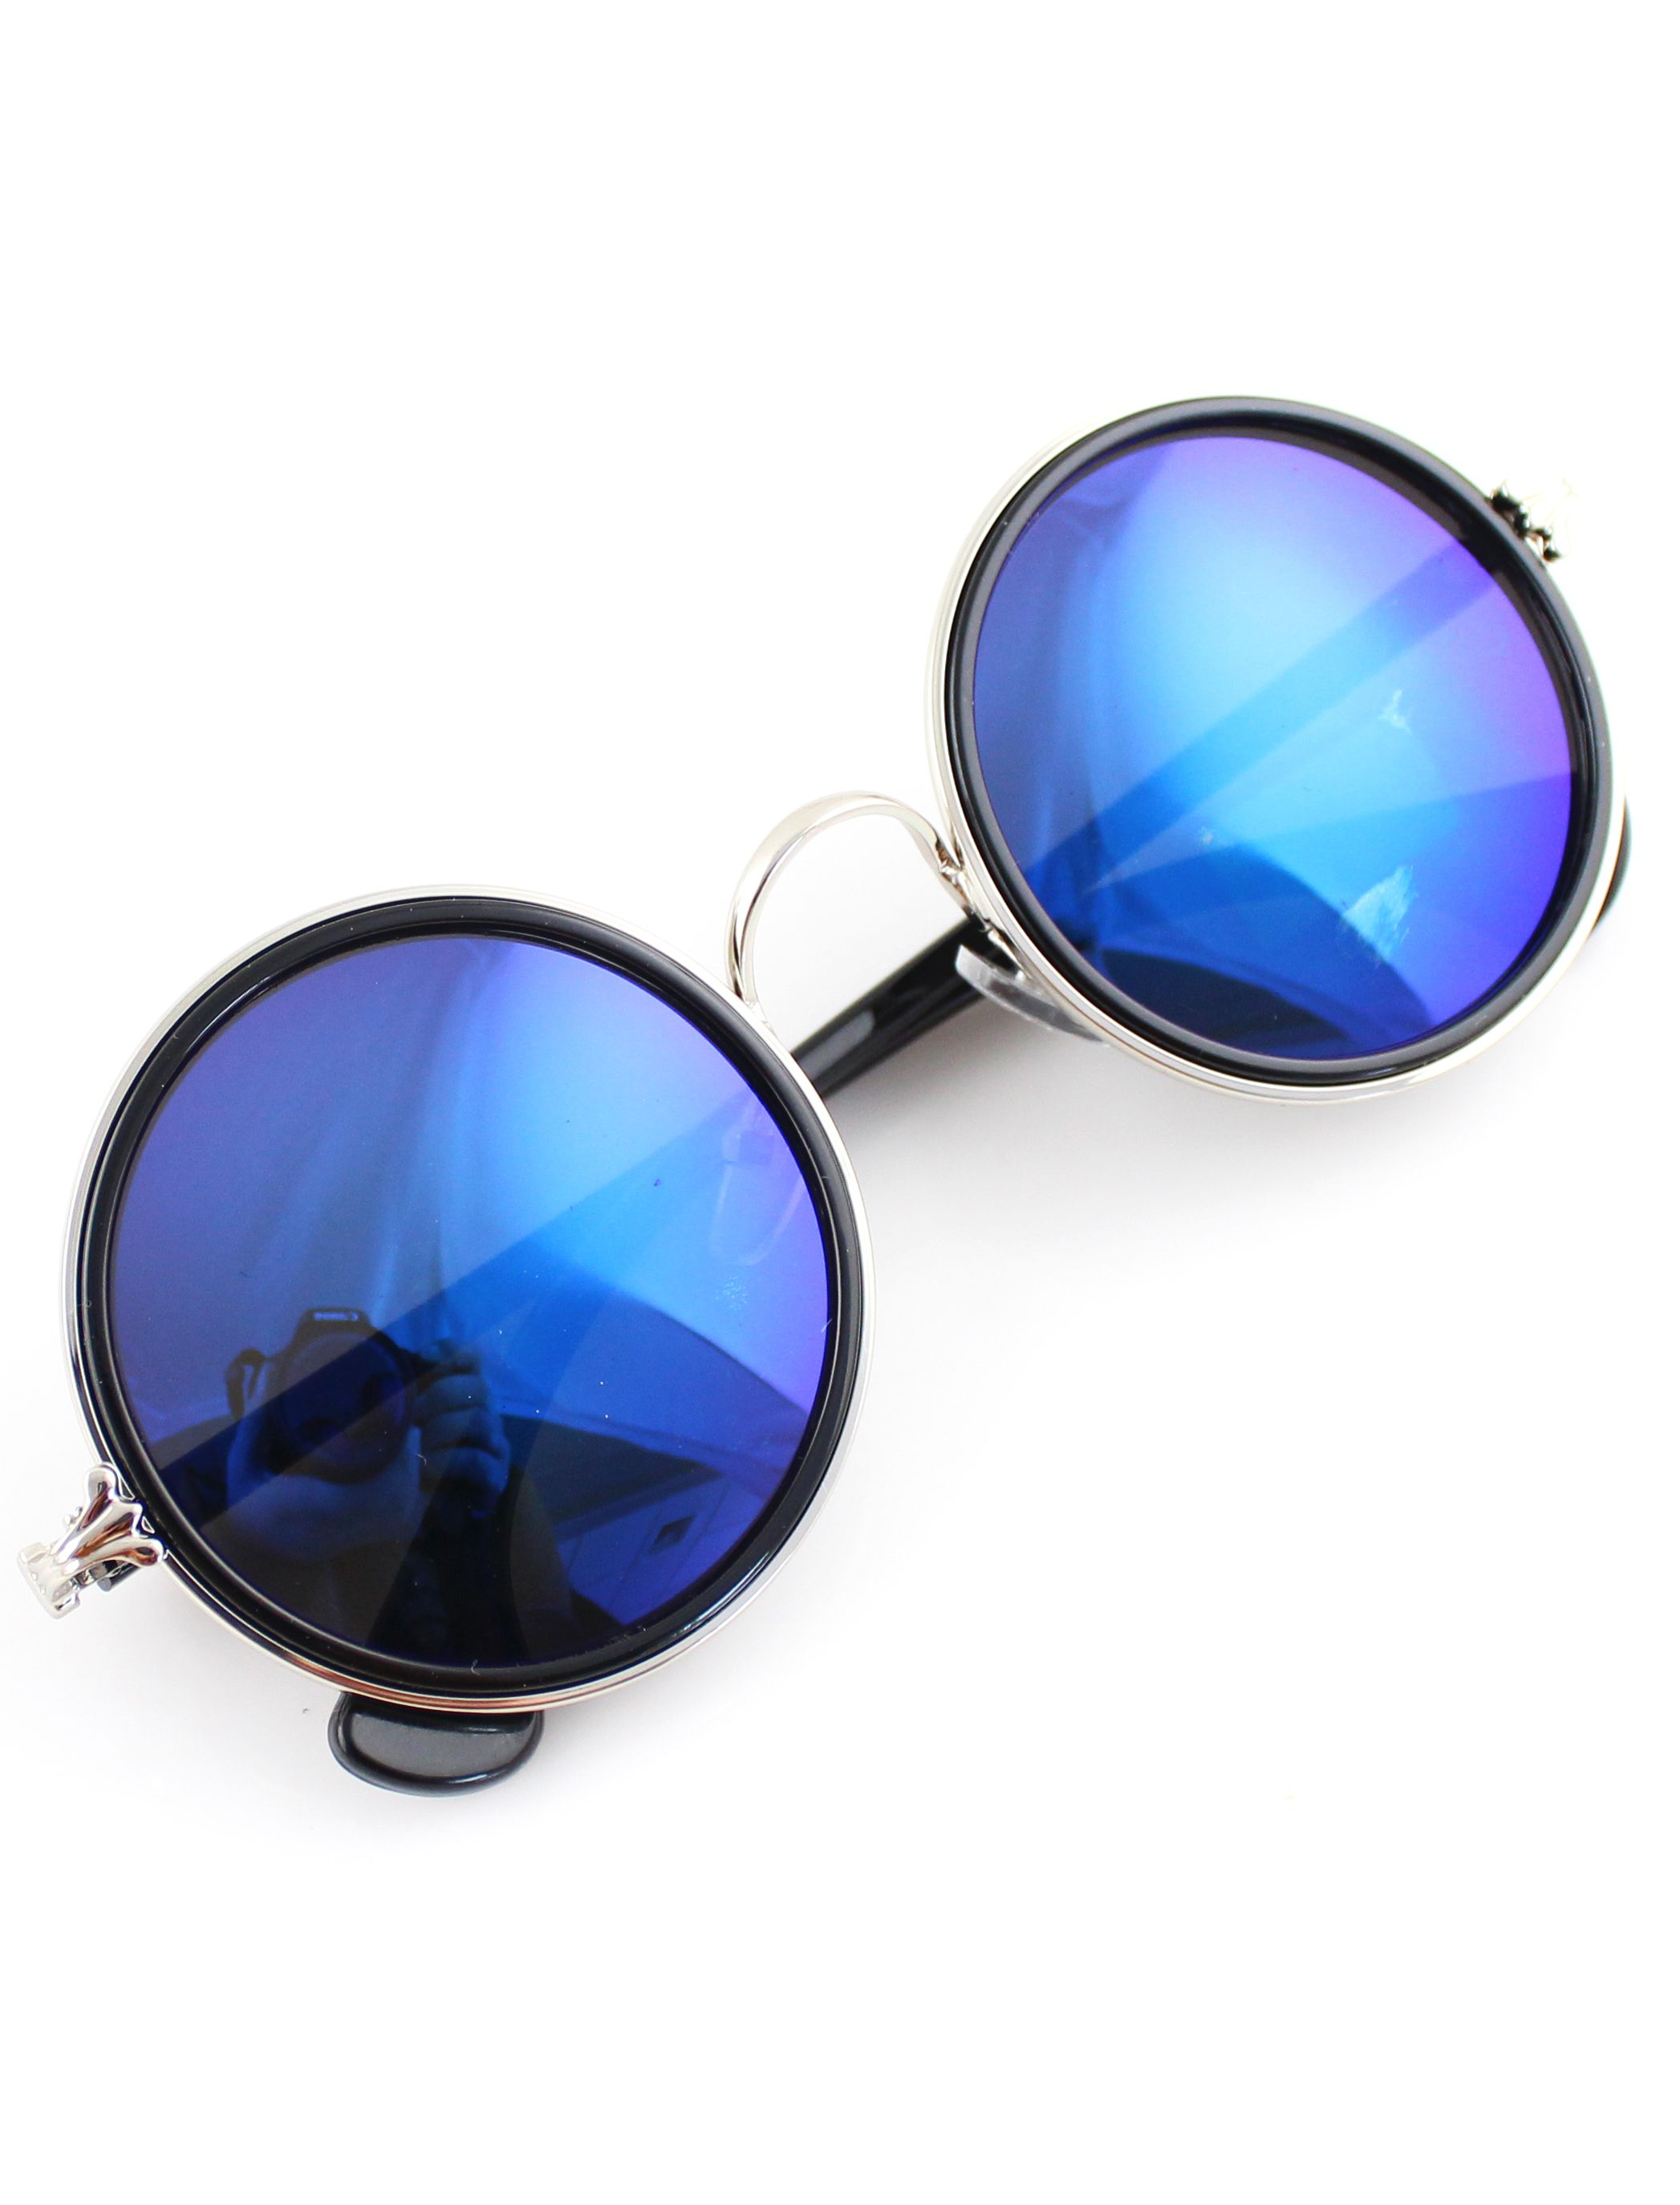 03442cd889fdb cheap and cheerful! Silver Rim Blue Round Sunglasses 14.30